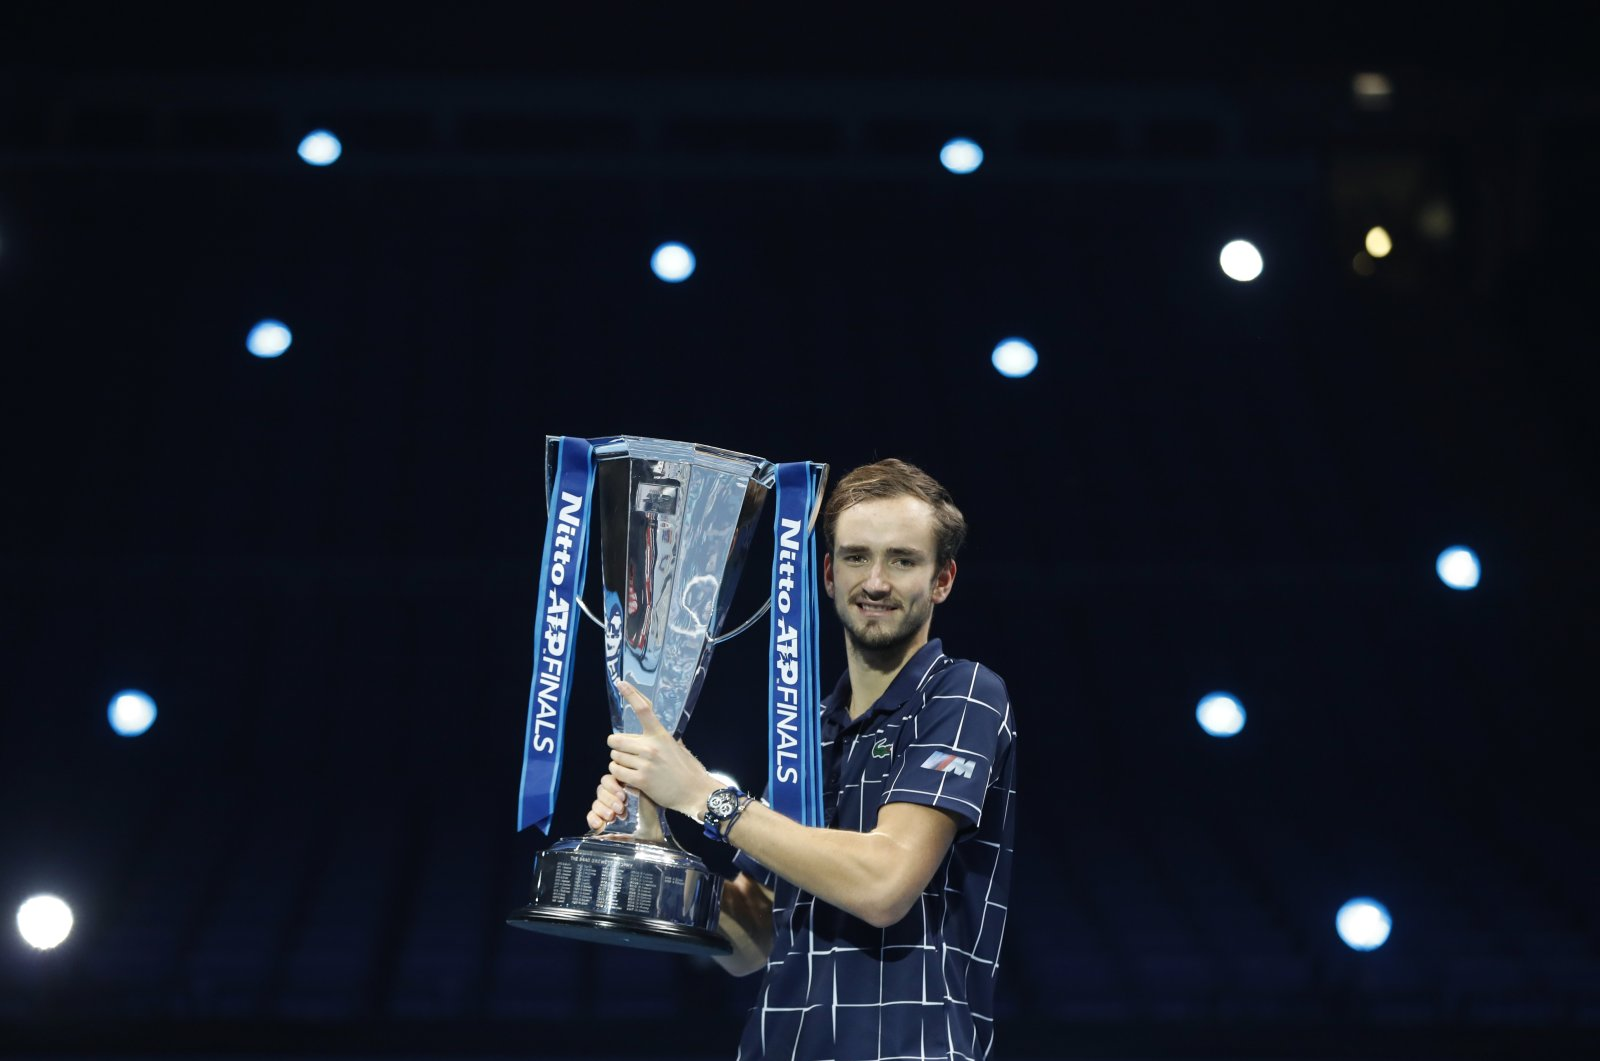 Daniil Medvedev holds up his trophy after winning the ATP Finals tennis tournament in London, Britain, Nov. 22, 2020. (AP Photo)